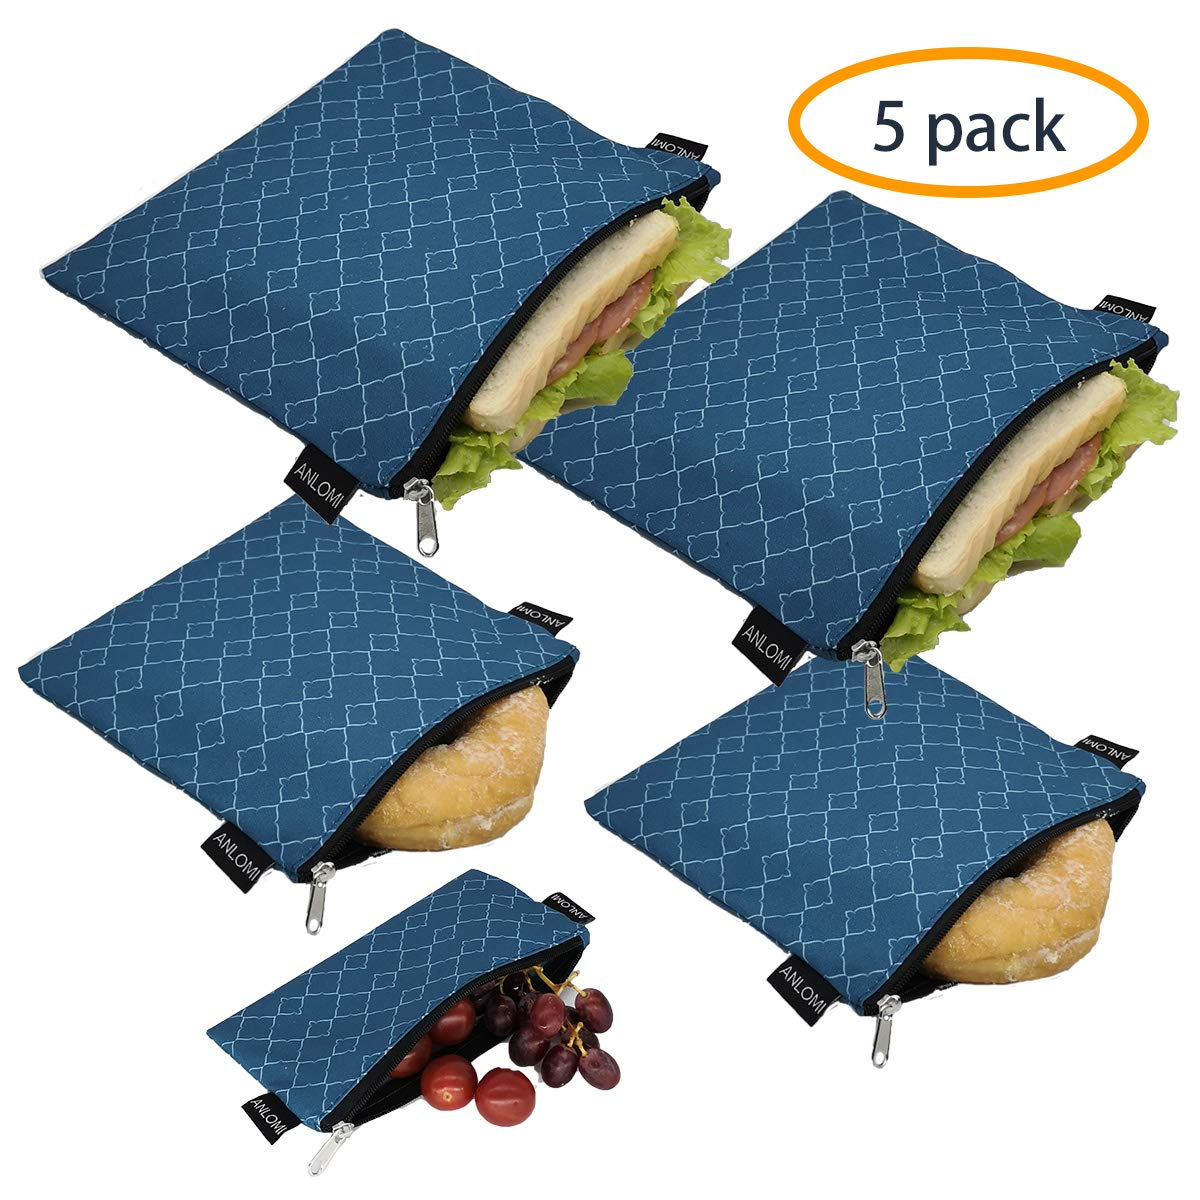 Reusable Sandwich Bags Snack Bags - Set of 5 Pack, Dishwasher Safe Lunch Bags with Zipper, Eco Friendly Food Wraps, BPA-Free. (PeacockBlue) by ANLOMI